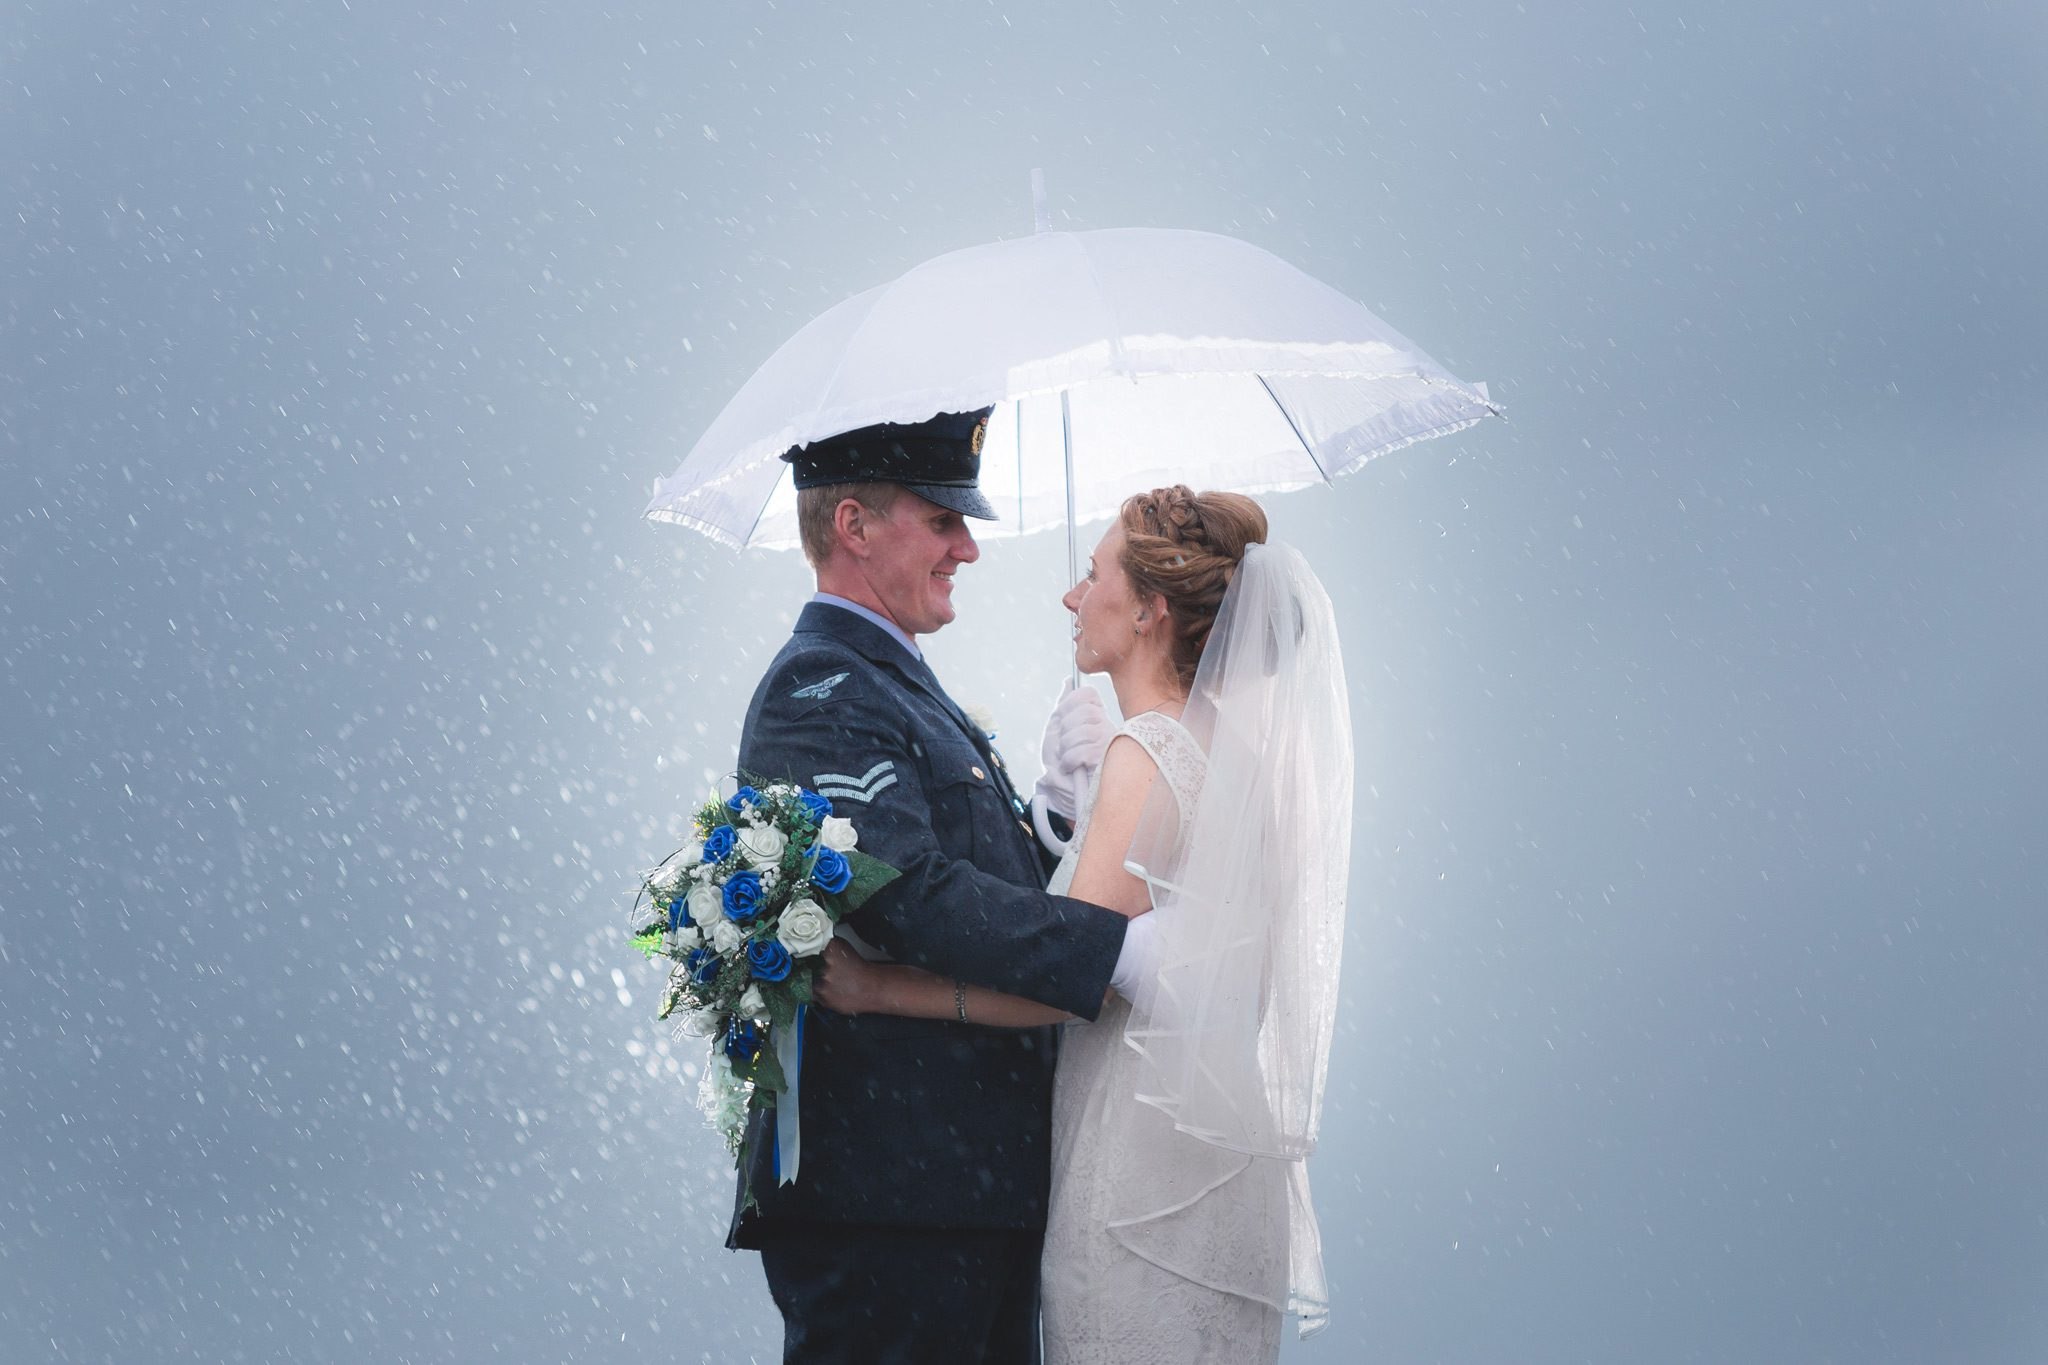 Peak District Wedding Photographer - Curbar Edge - Rain